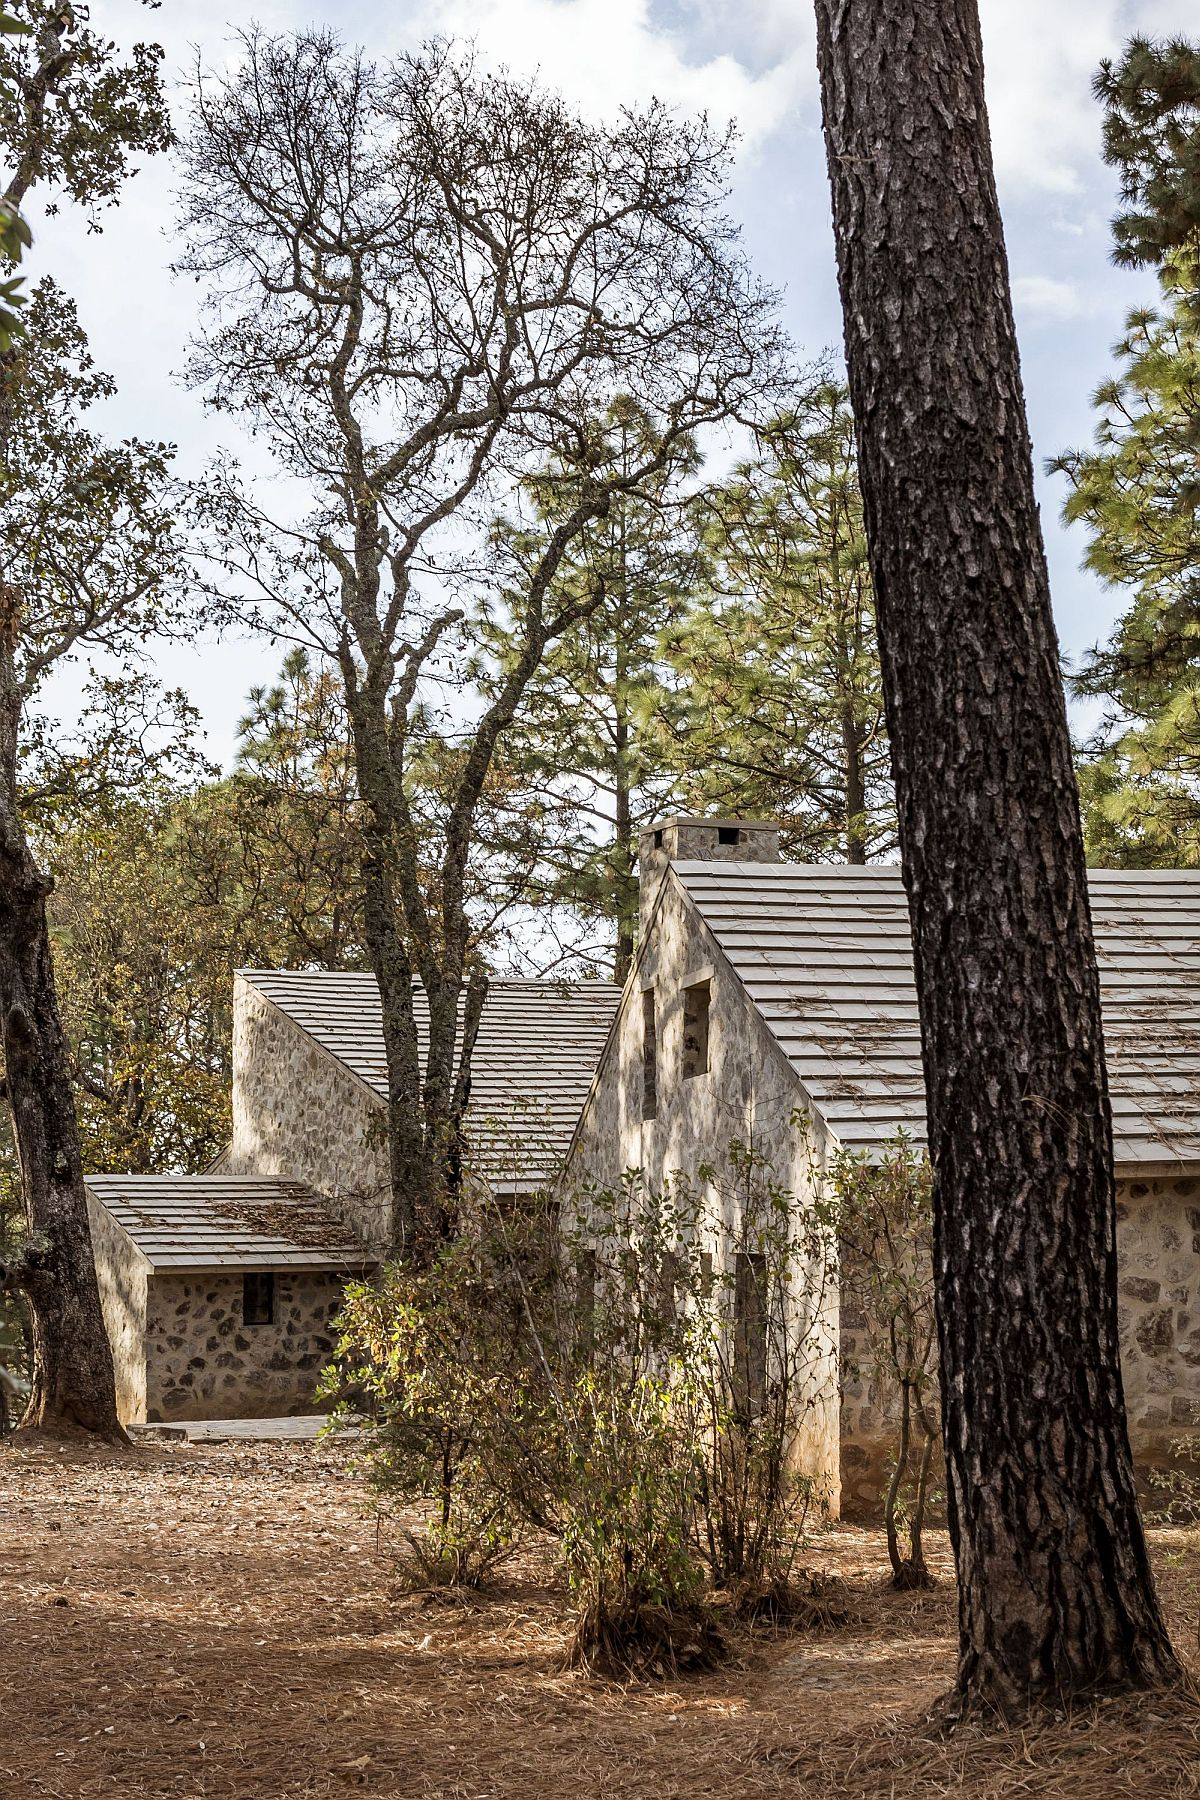 Oak and pine trees flank the path leading to the rustic Mexican cabins